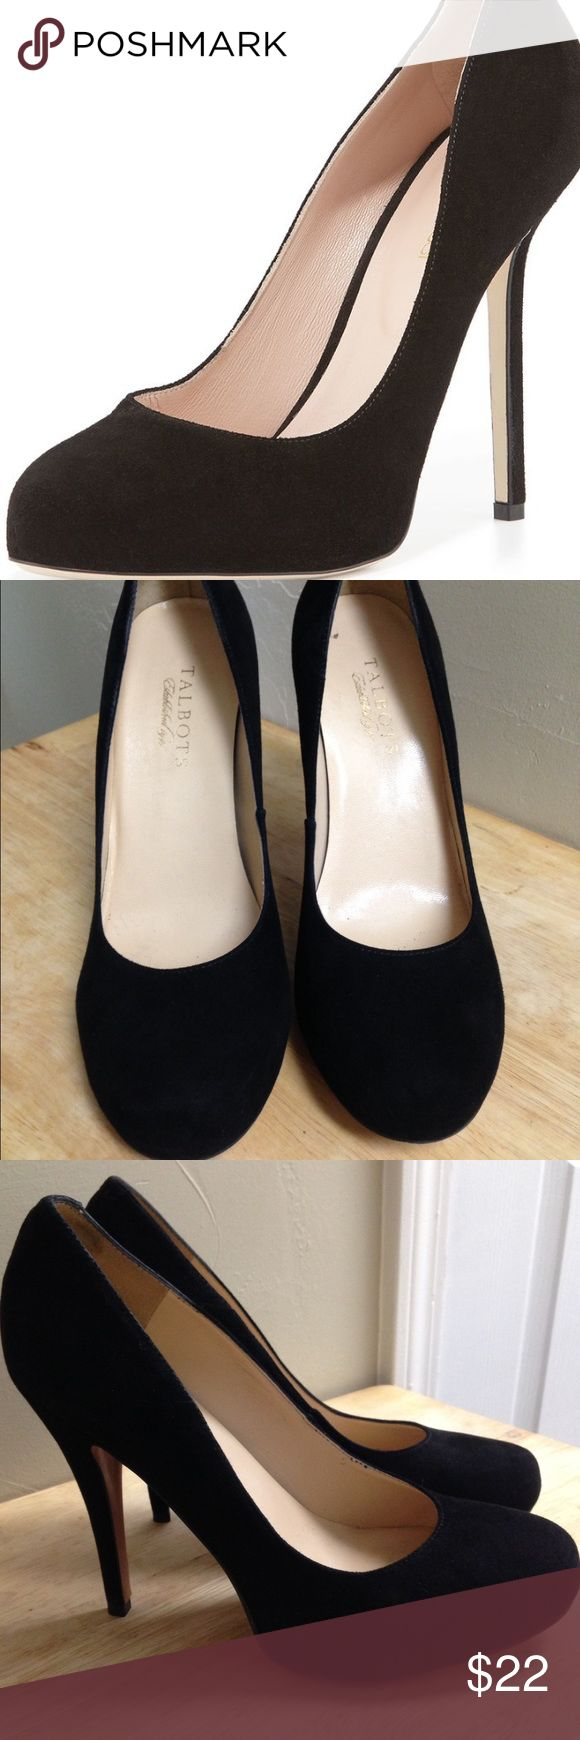 Talbots black suede pumps Really cute black suede pumps with a round toe. Really comfortable and classic! They shoe is in prefect condition and has only been worn once! The shoe is stunning and the suede is not showing any signs rubbing in any areas. Talbots Shoes Heels